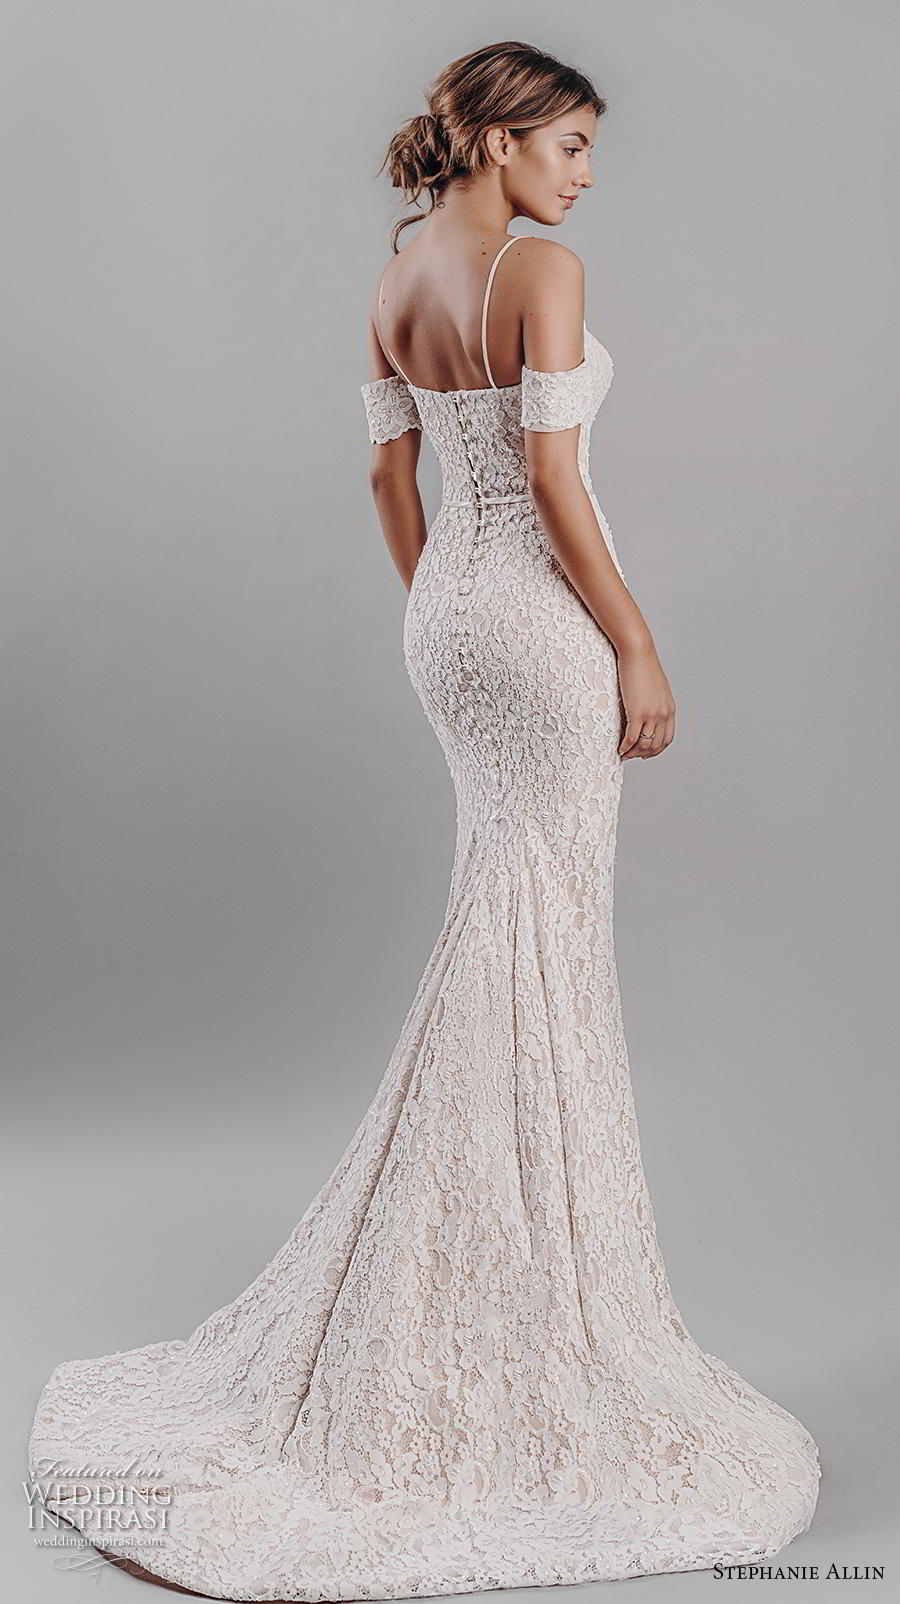 stephanie allin 2019 bridal cold shoulder spaghetti strap sweetheart neckline full embellishment elegant fit and flare wedding dress mid back short train (4) bv